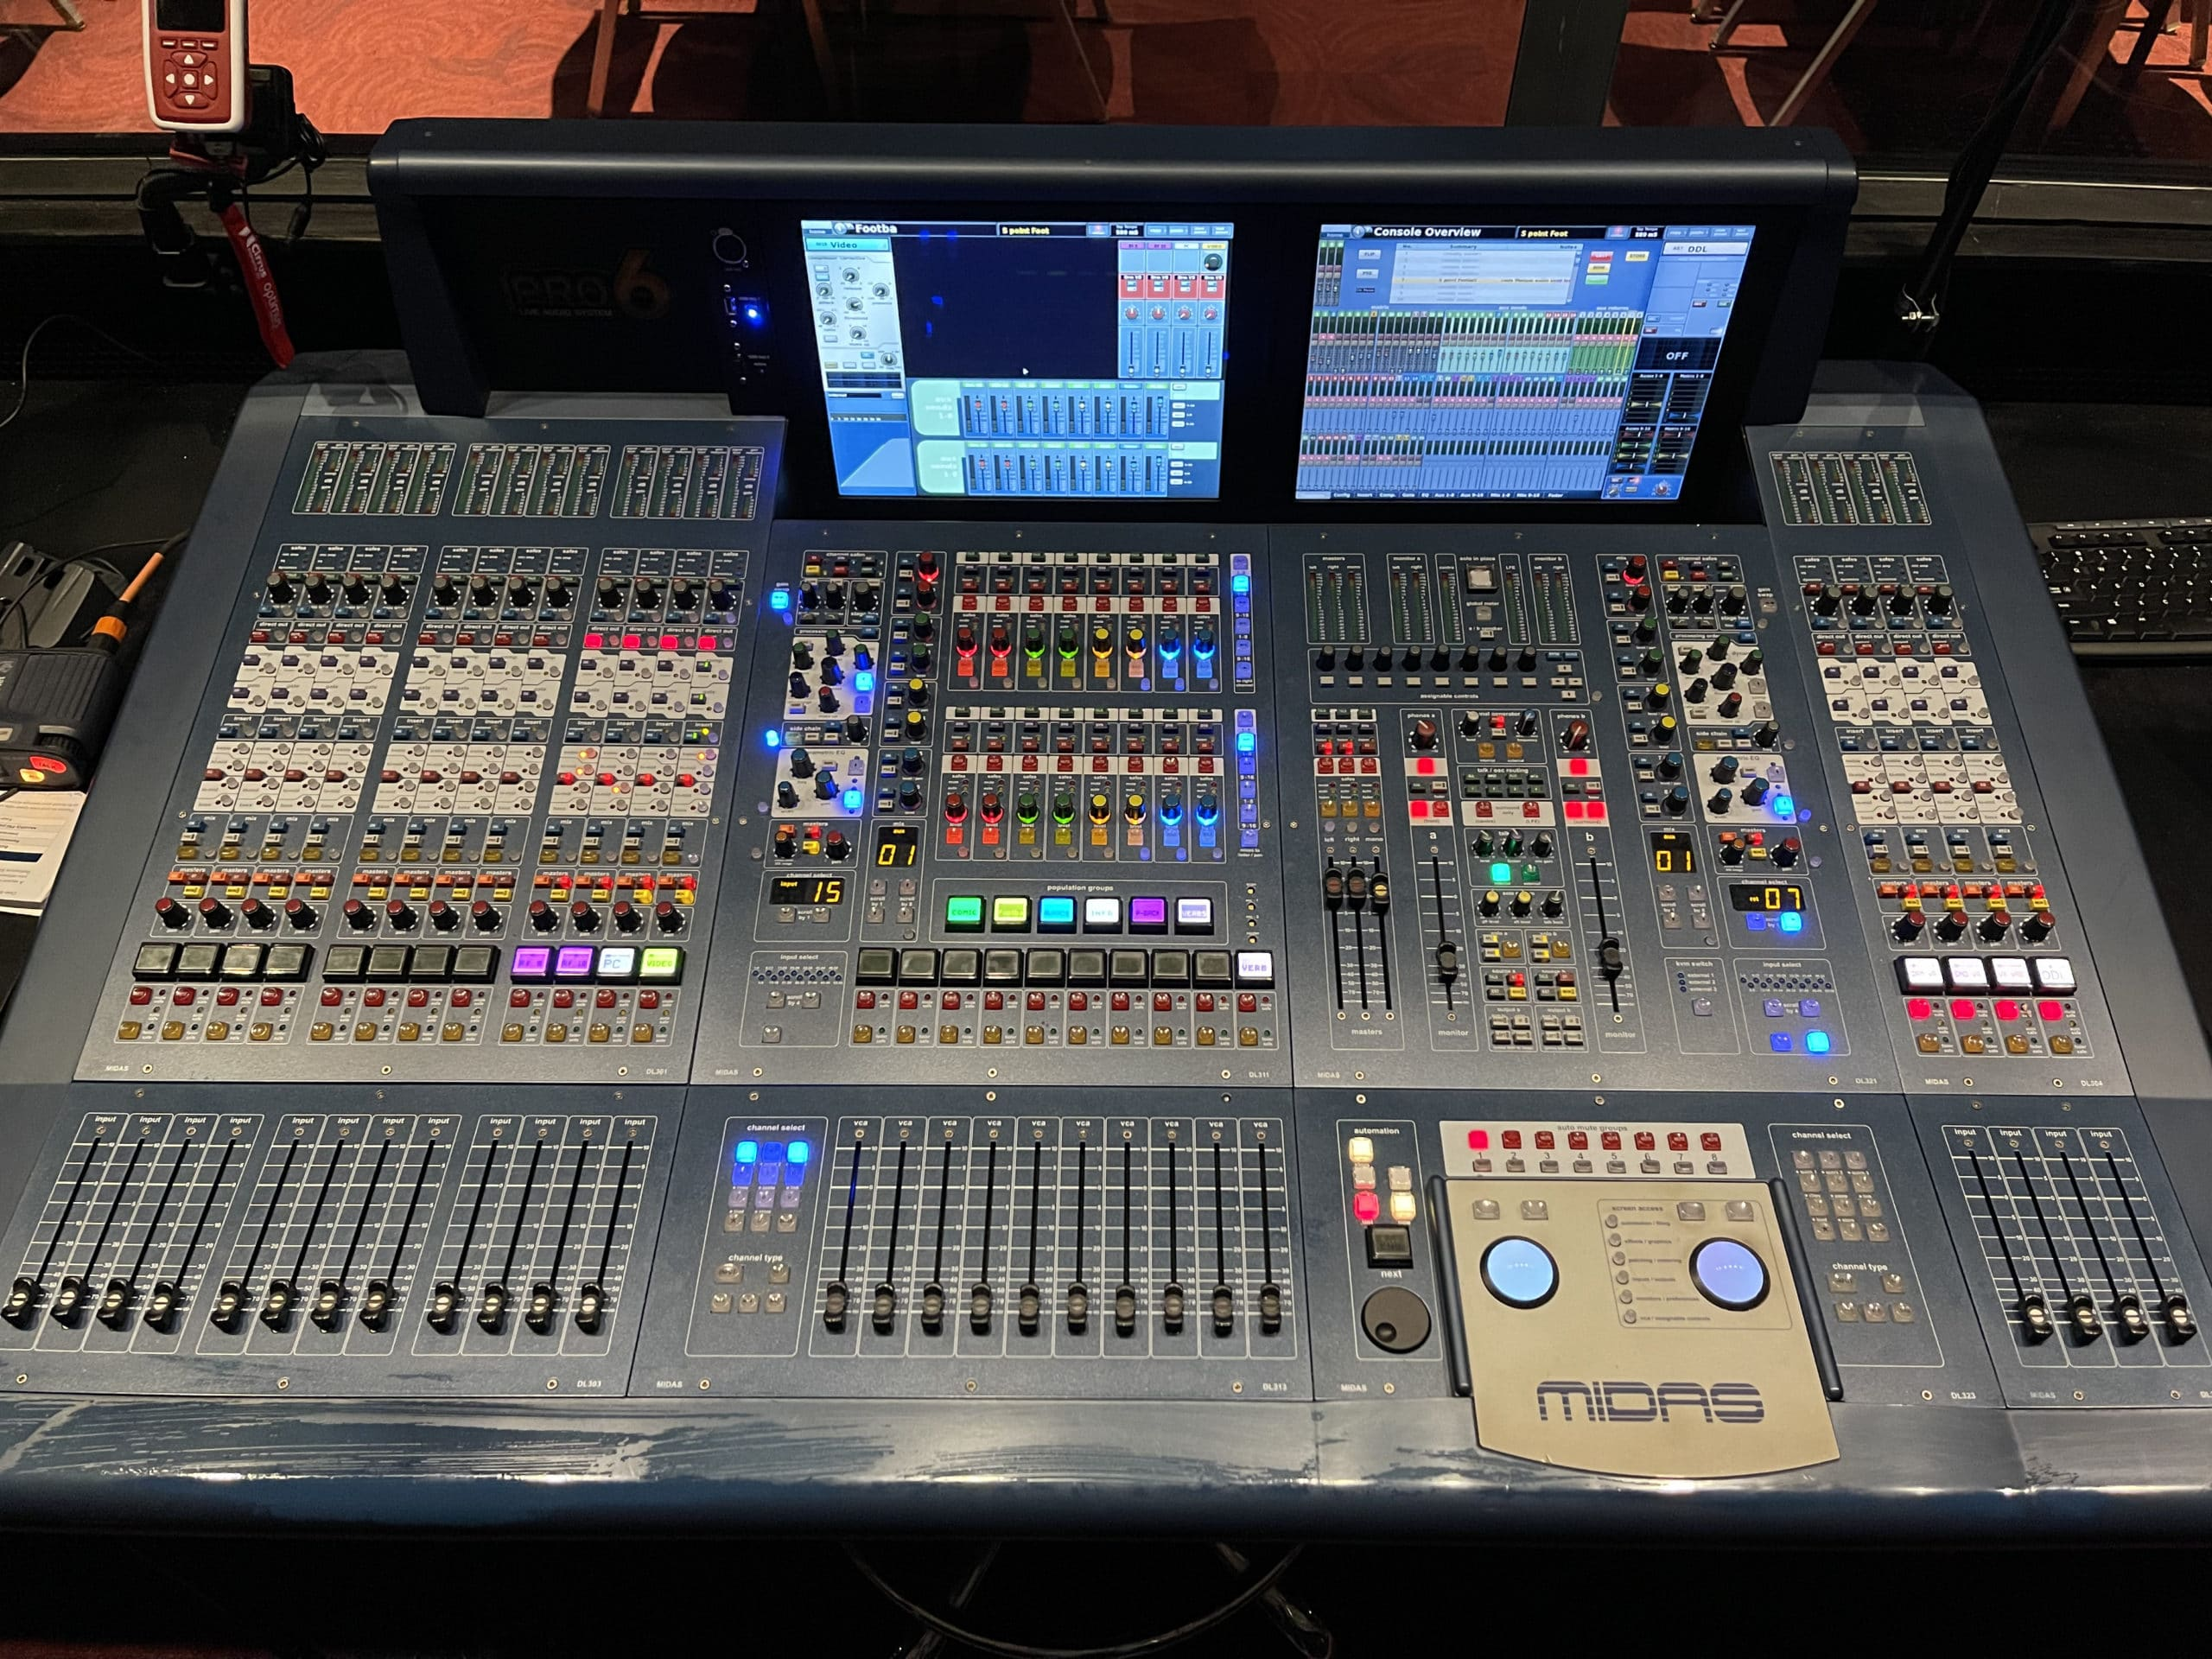 Midas PRO6 Live Audio Mixing System with 64 Input Channels w/ DL351 & DL451 Modular Stage Box w/ I/O Cards #C1278-1 MAIN